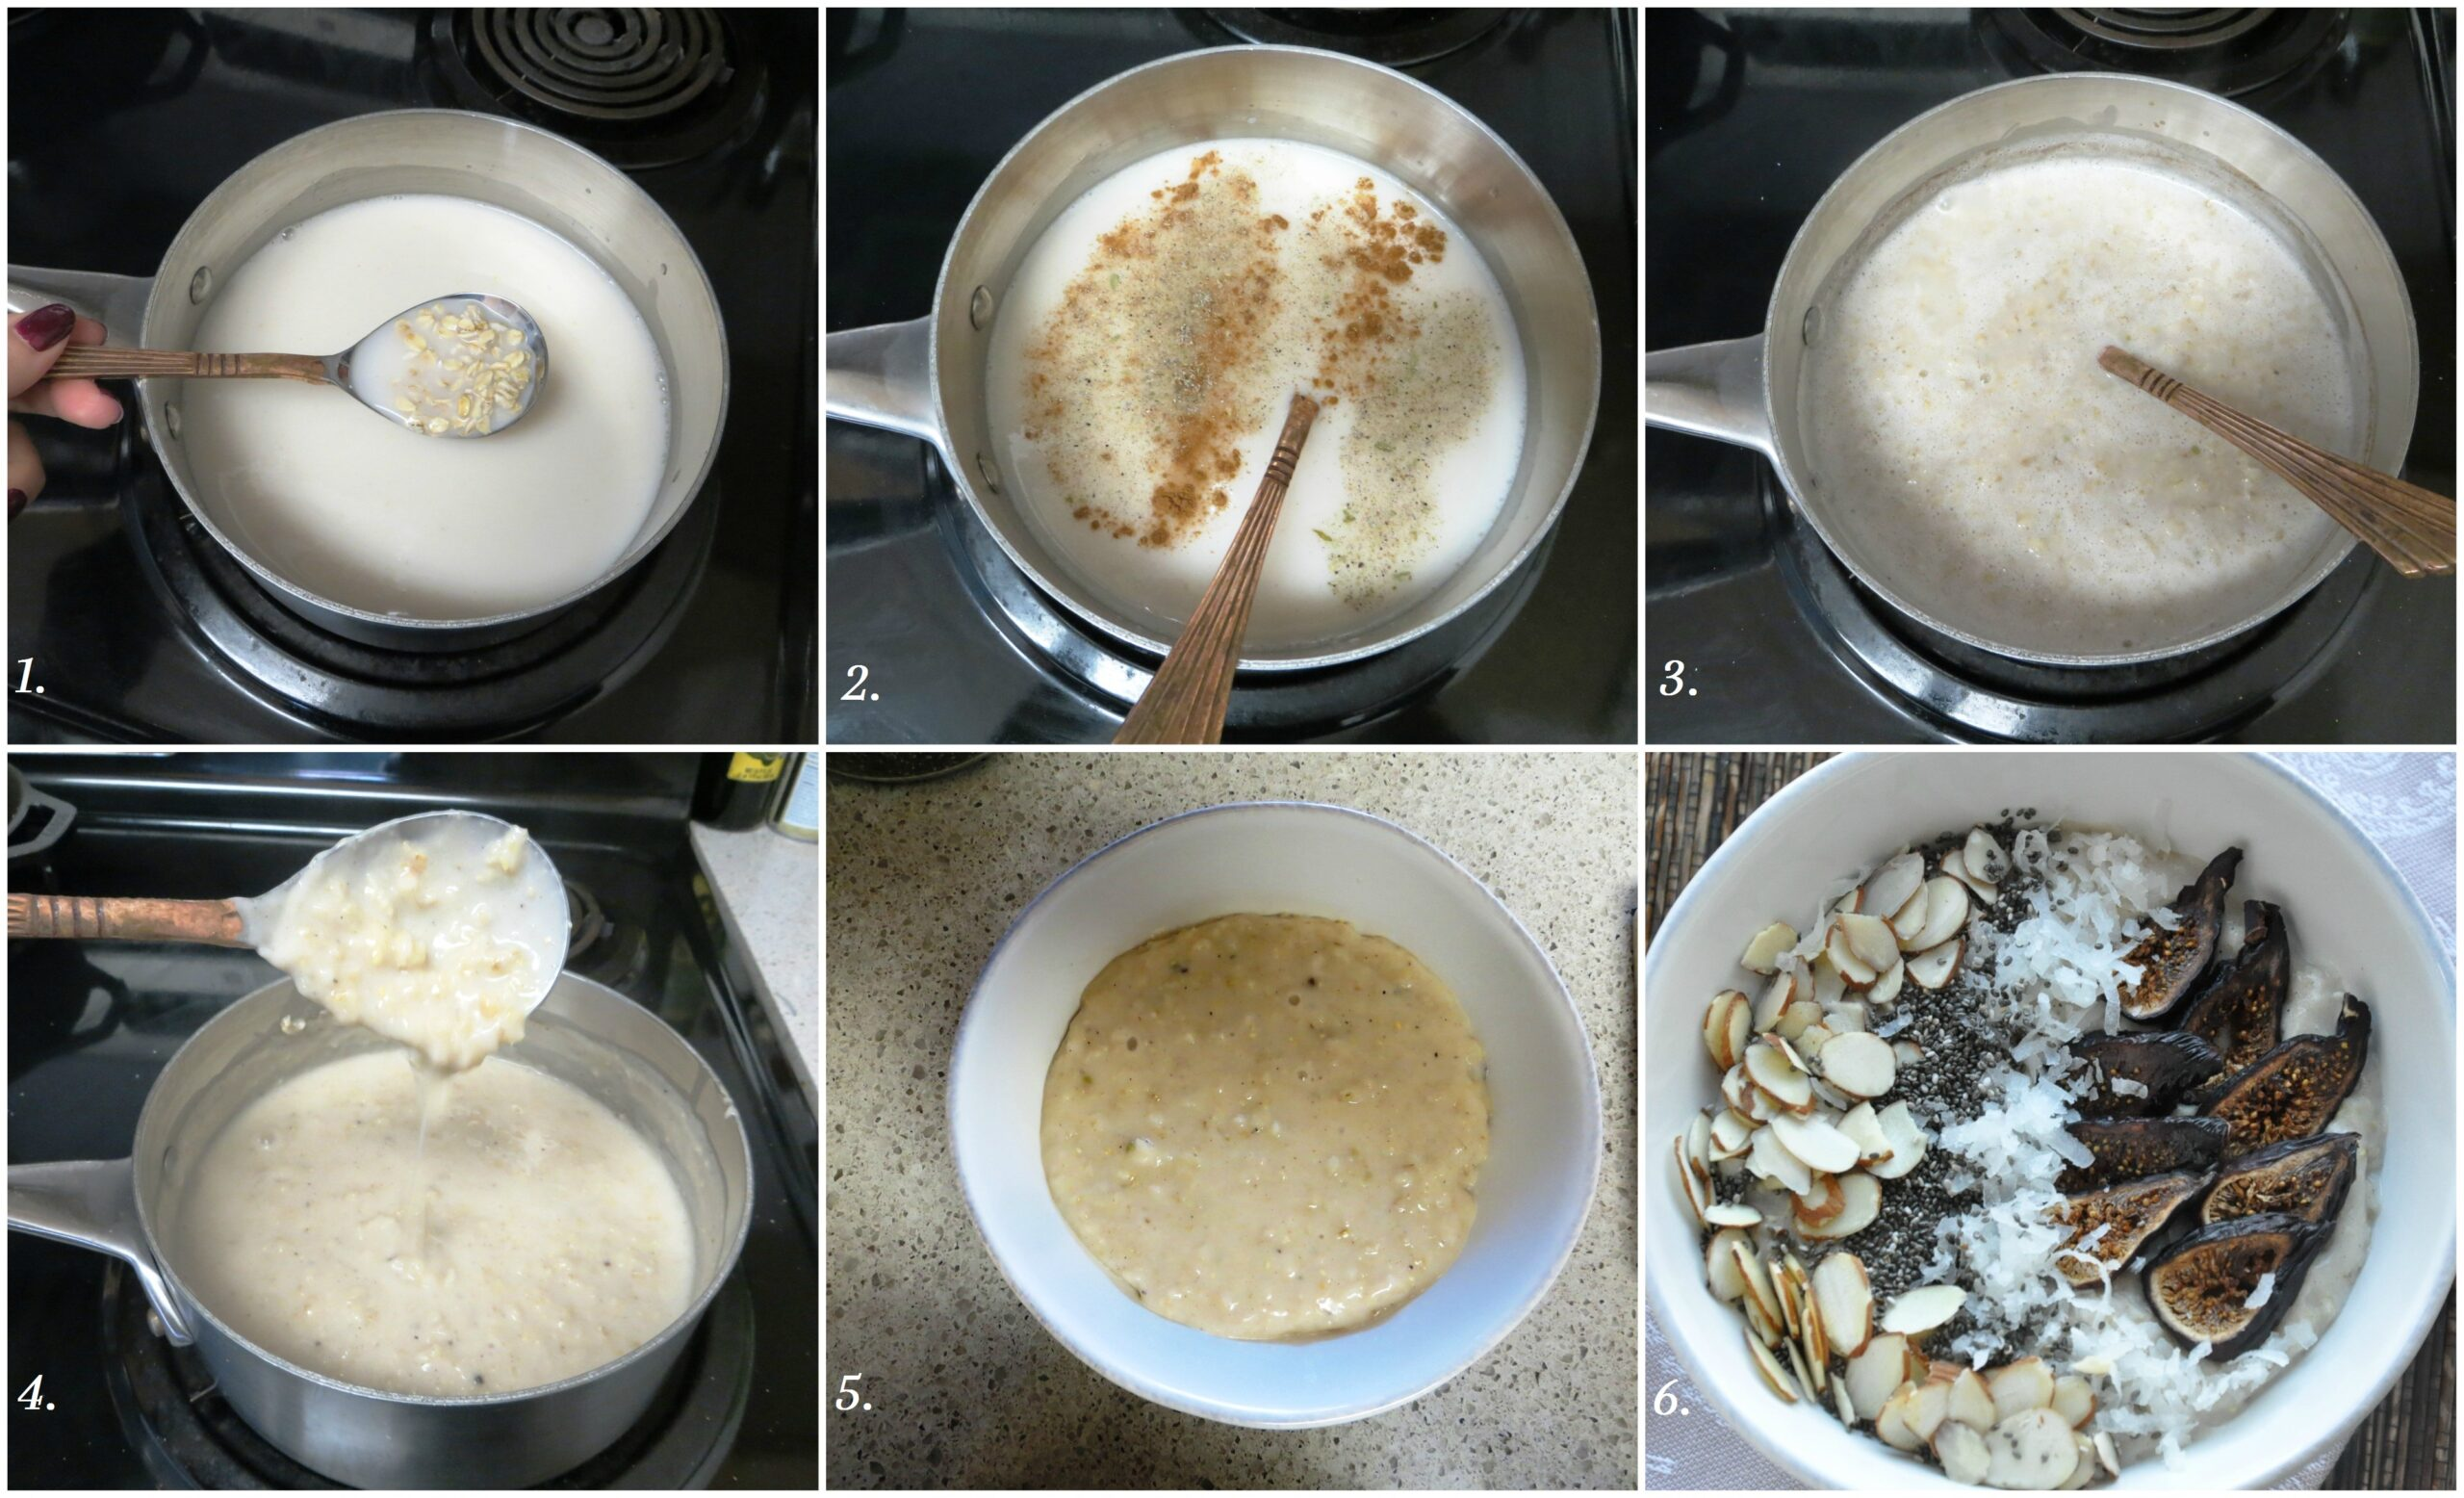 Fig Almond & Cardamom Oatmeal step by step pictures